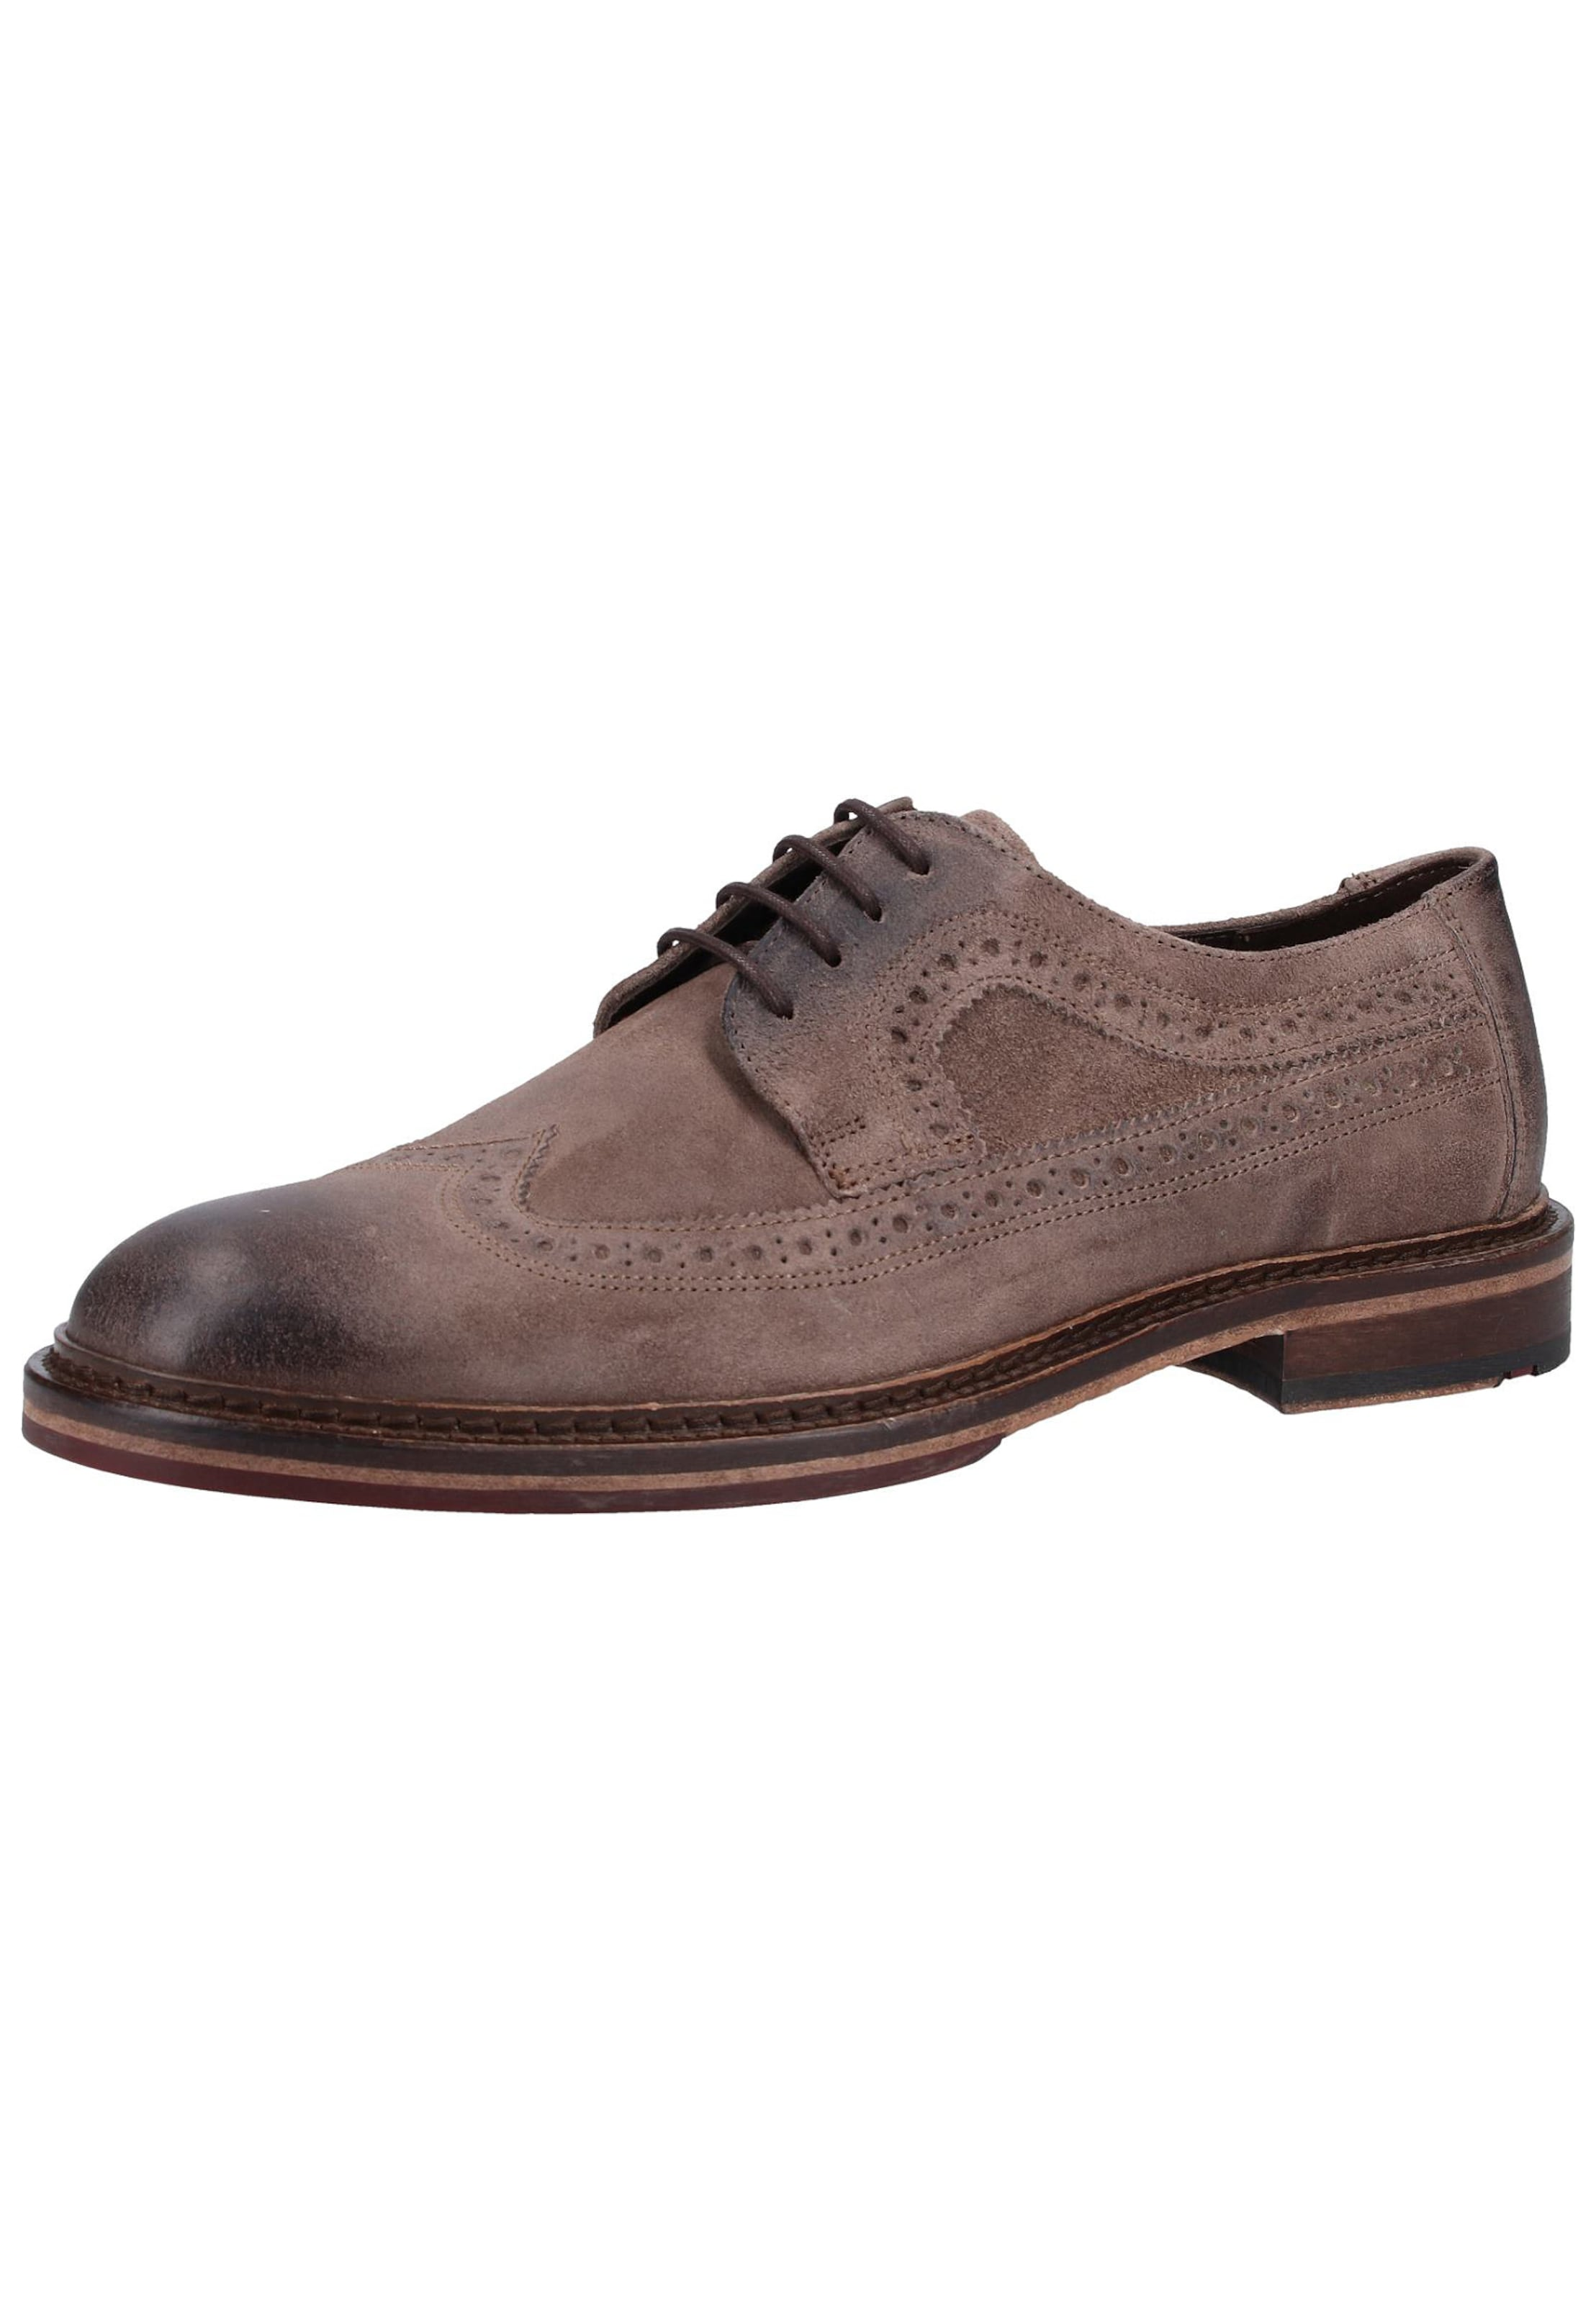 À Chaussure En Lloyd Lacets 'hadera' Taupe oeWxrBdC